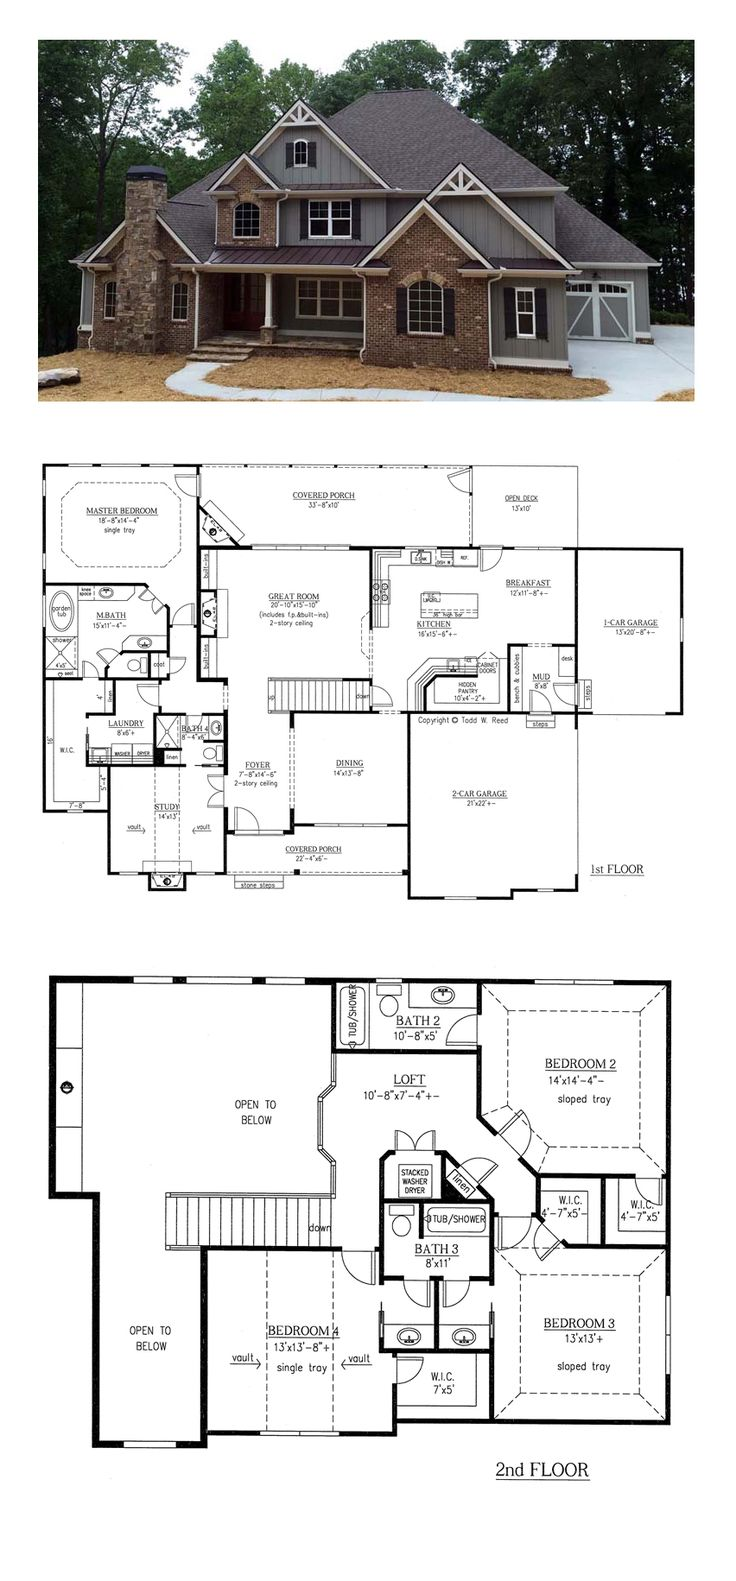 Best 25 dream house plans ideas on pinterest house for French farmhouse house plans